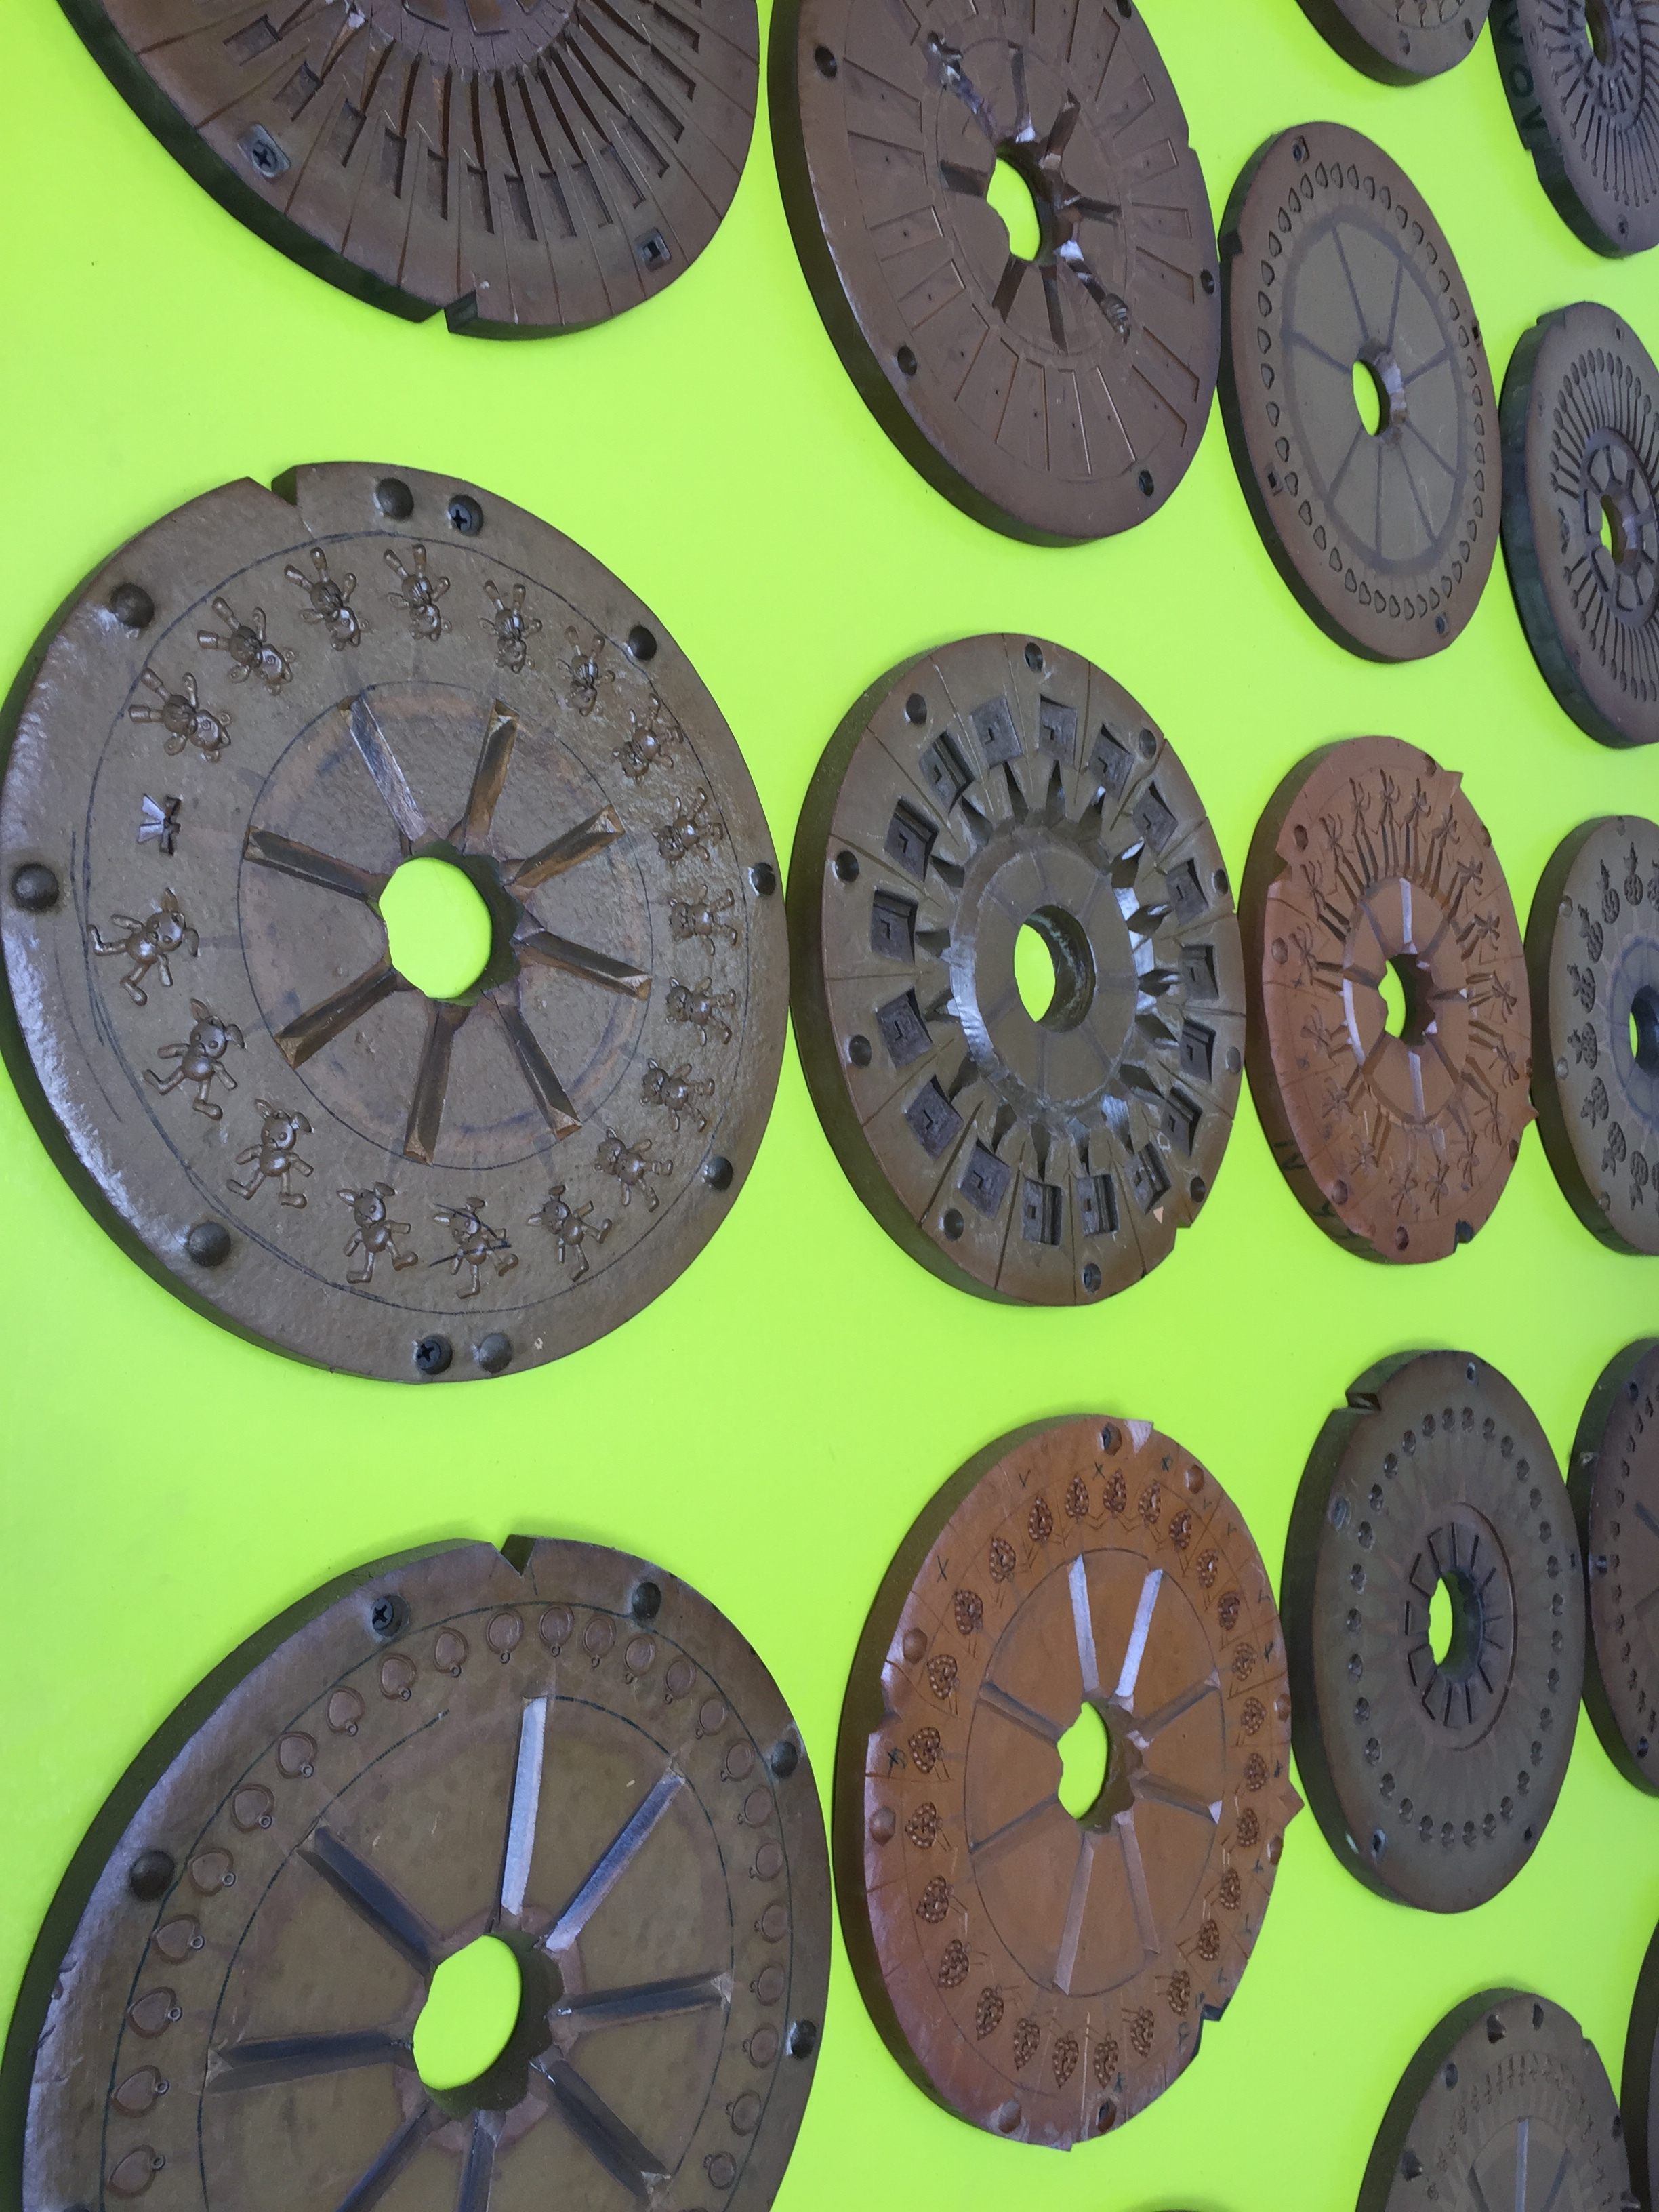 These are old jewelry molds Alison found in an old, Pawtucket mill. She collected them, each with different patterns, and cleaned them up. On top of a bright, lime green wooden screen, hanging on plumbing pipe frames, these serve to hide the outdoor fridge and pool equipment.